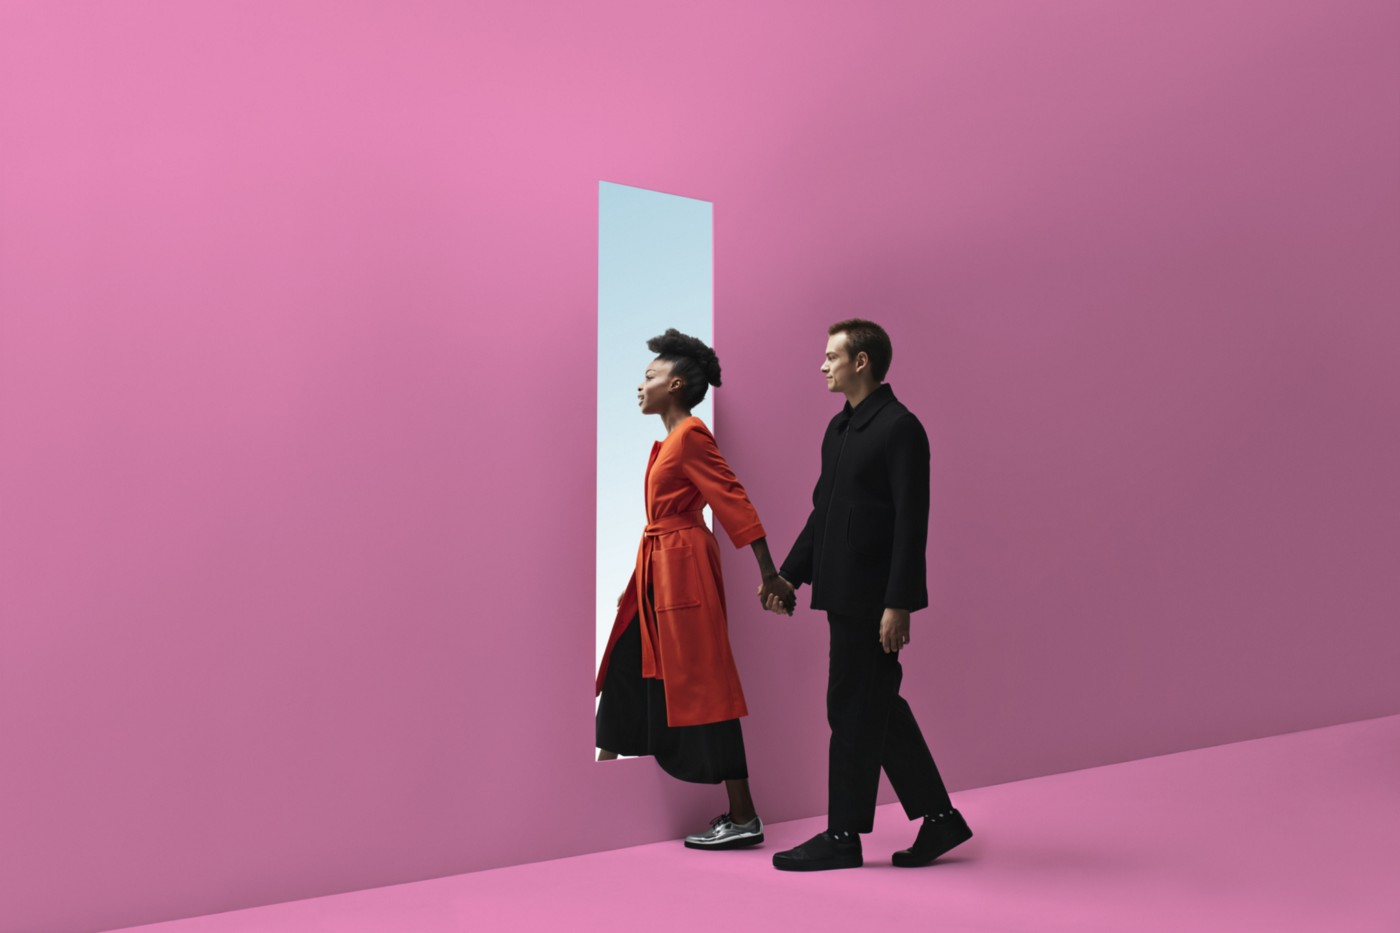 Interracial couple walking through a door in a pink wall, holding hands.